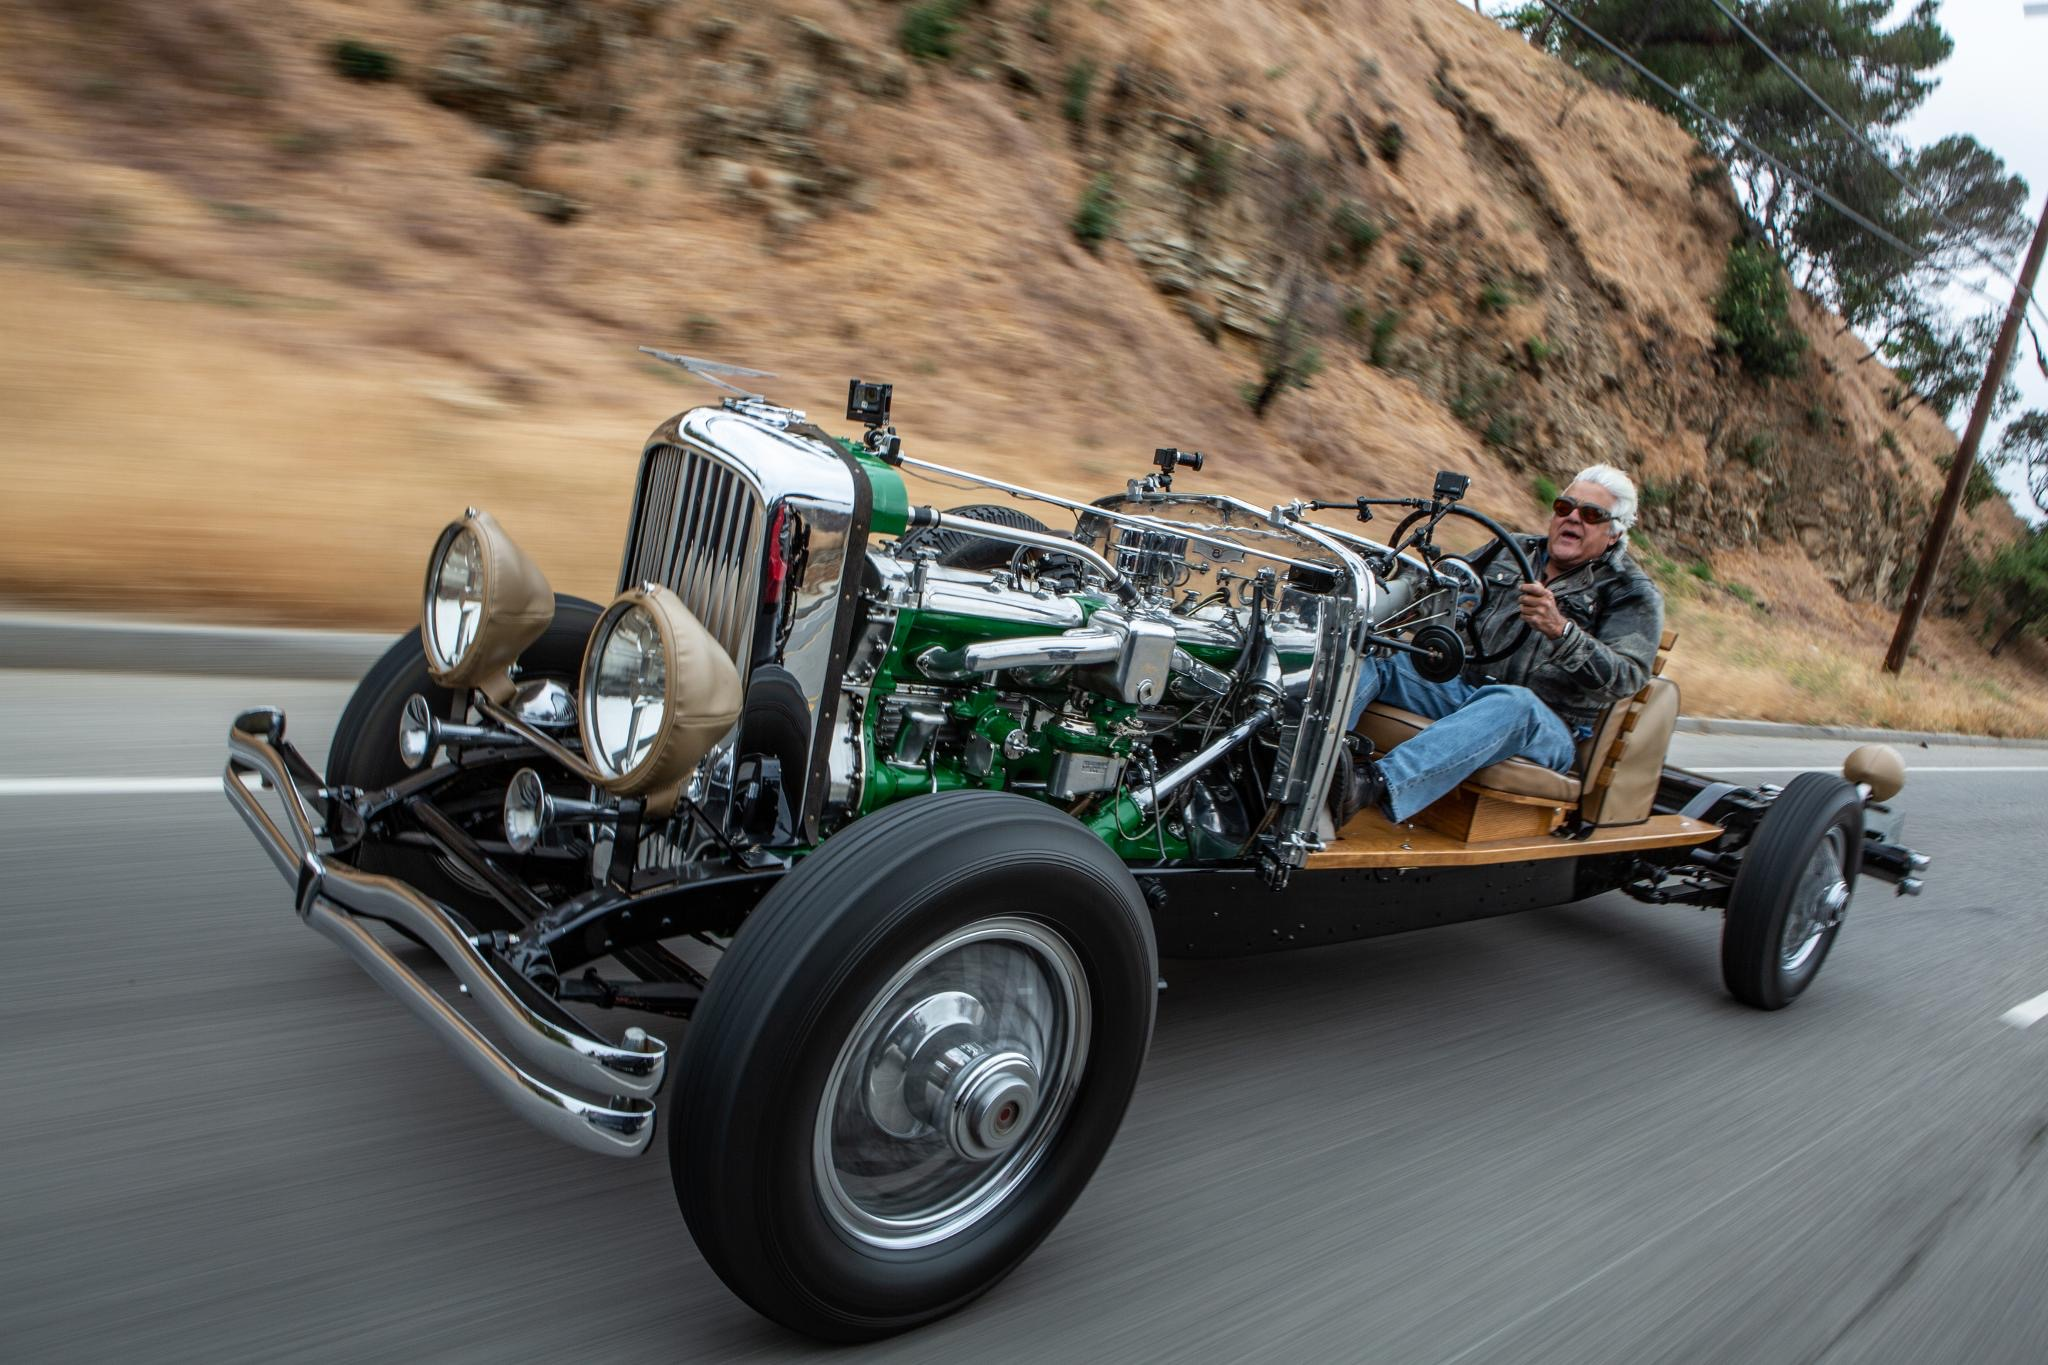 Jay Leno on cars, motorcycles and the next generation